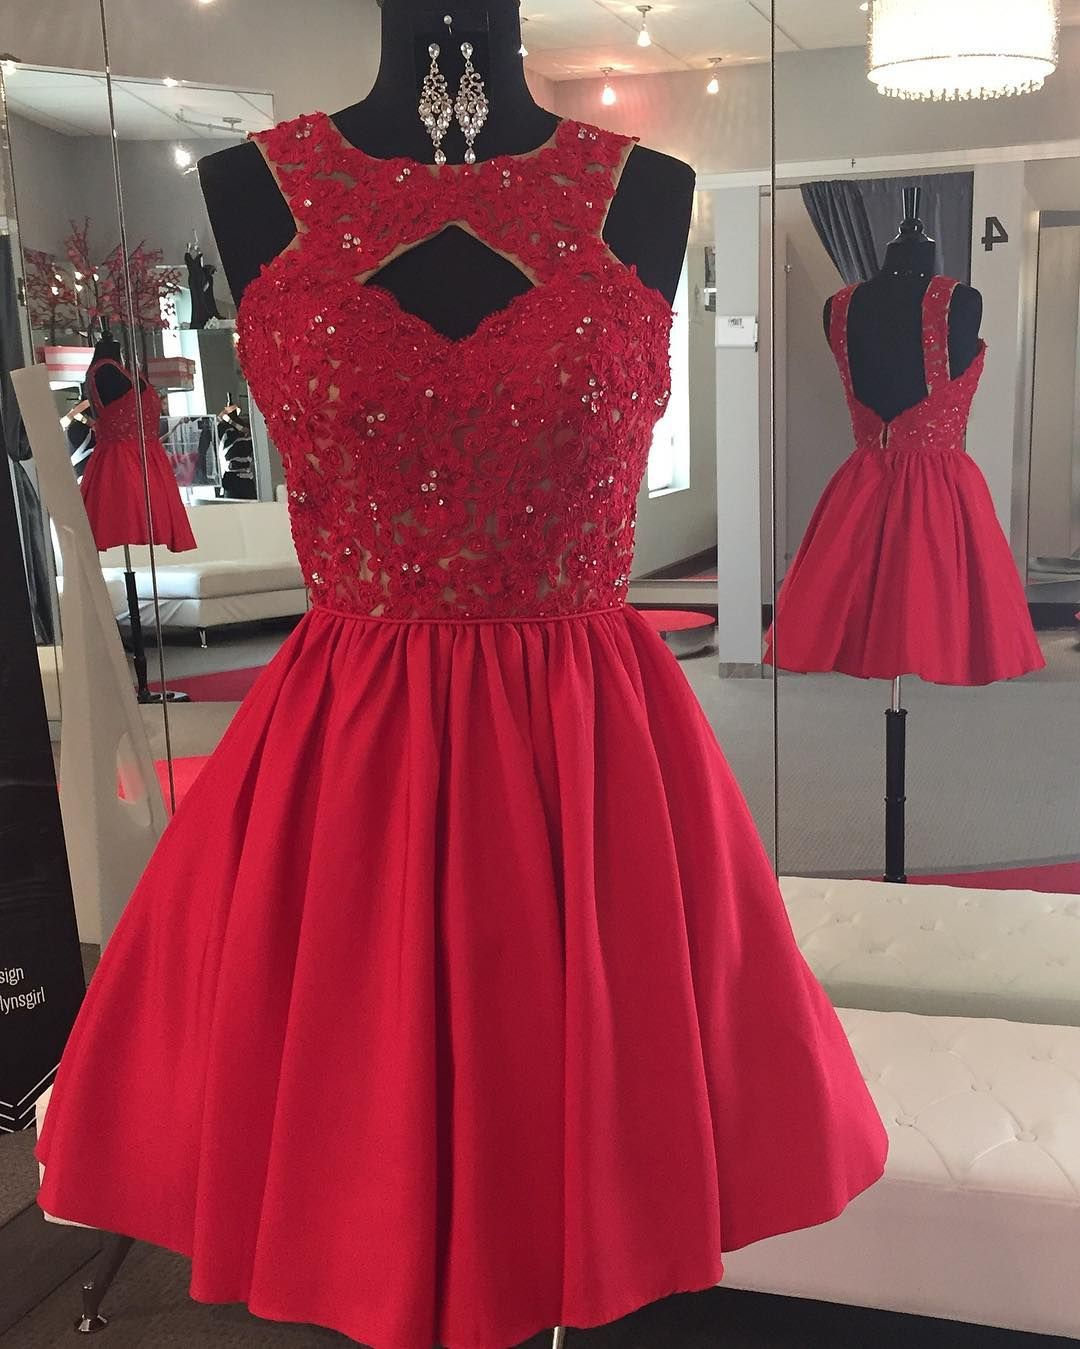 Backless Beaded Lace Red Satin Homecoming Dress Short Prom Gowns Elegant Homecoming Dresses Simple Homecoming Dresses Satin Homecoming Dress [ 1349 x 1080 Pixel ]